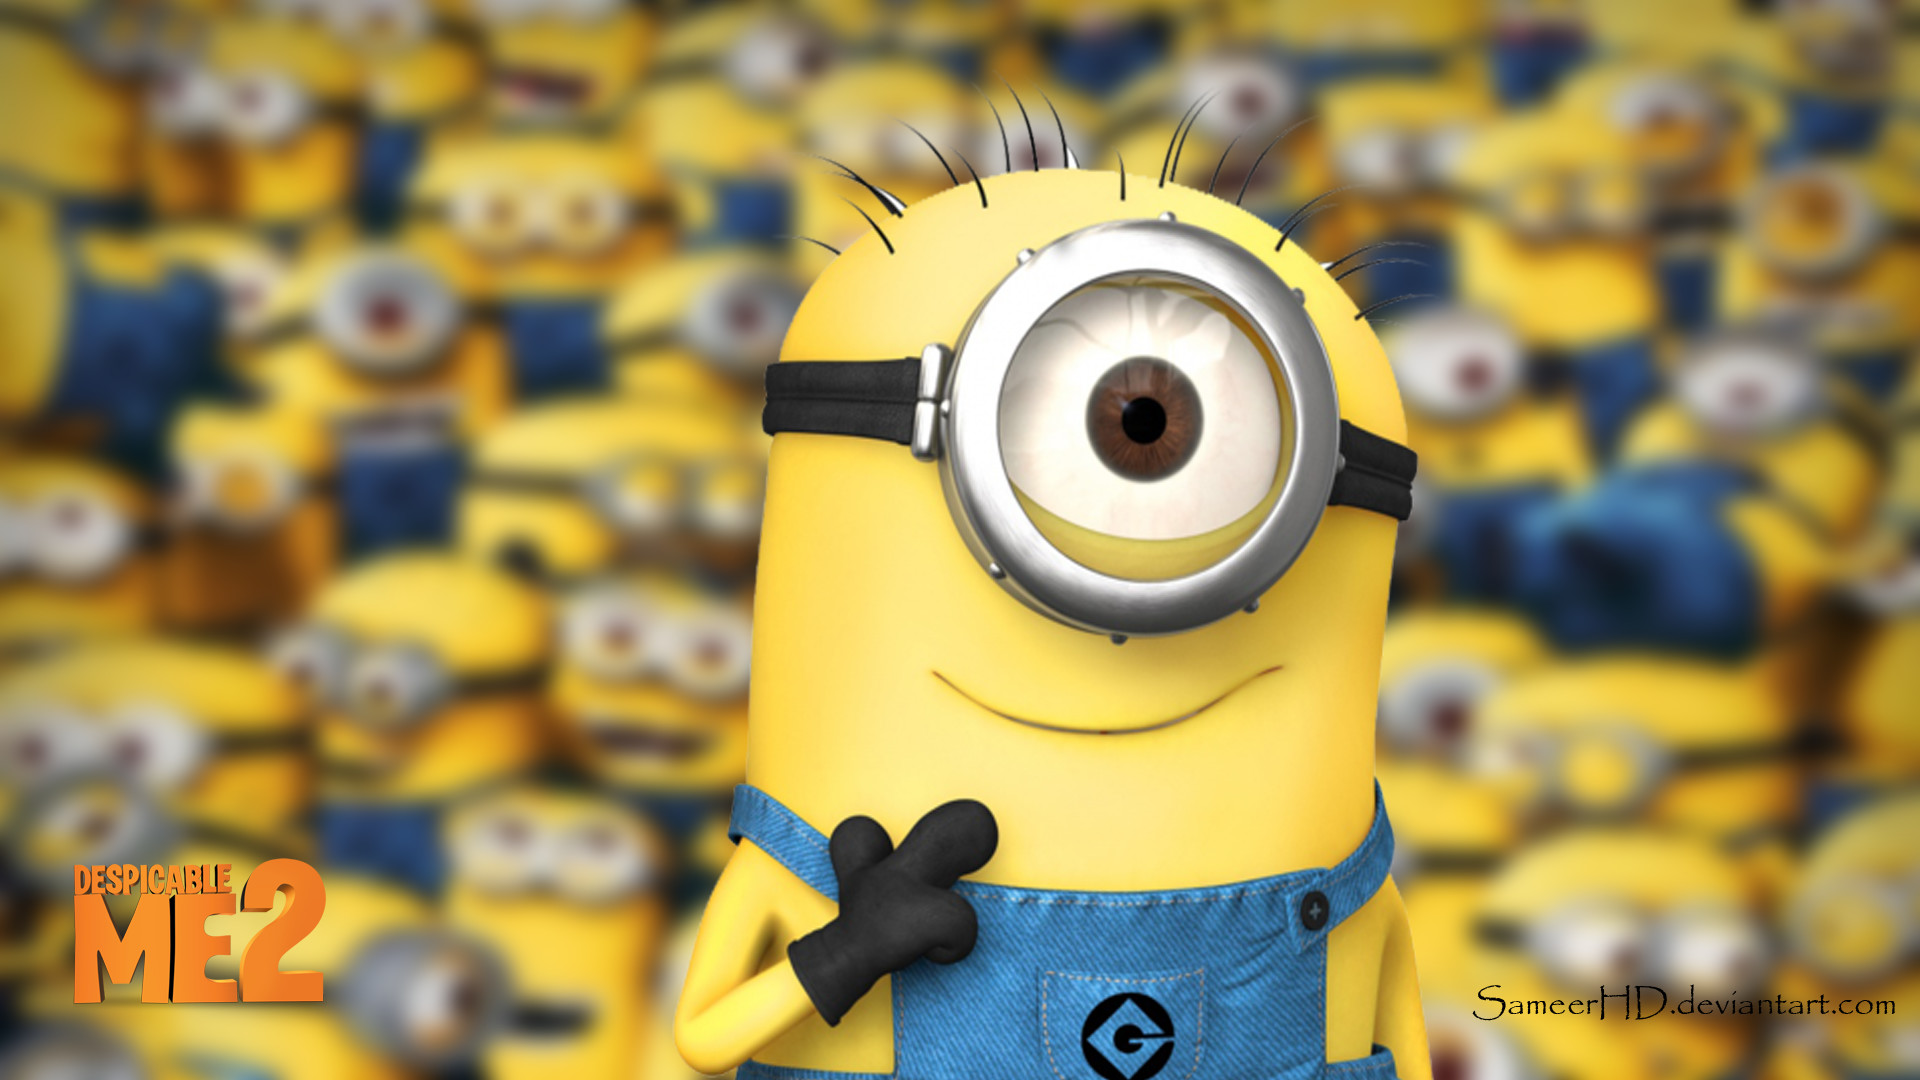 Despicable me minions background 1920x1080 despicable me hd wallpapers backgrounds wallpaper hd wallpapers pinterest hd wallpaper wallpaper and wallpaper backgrounds voltagebd Image collections